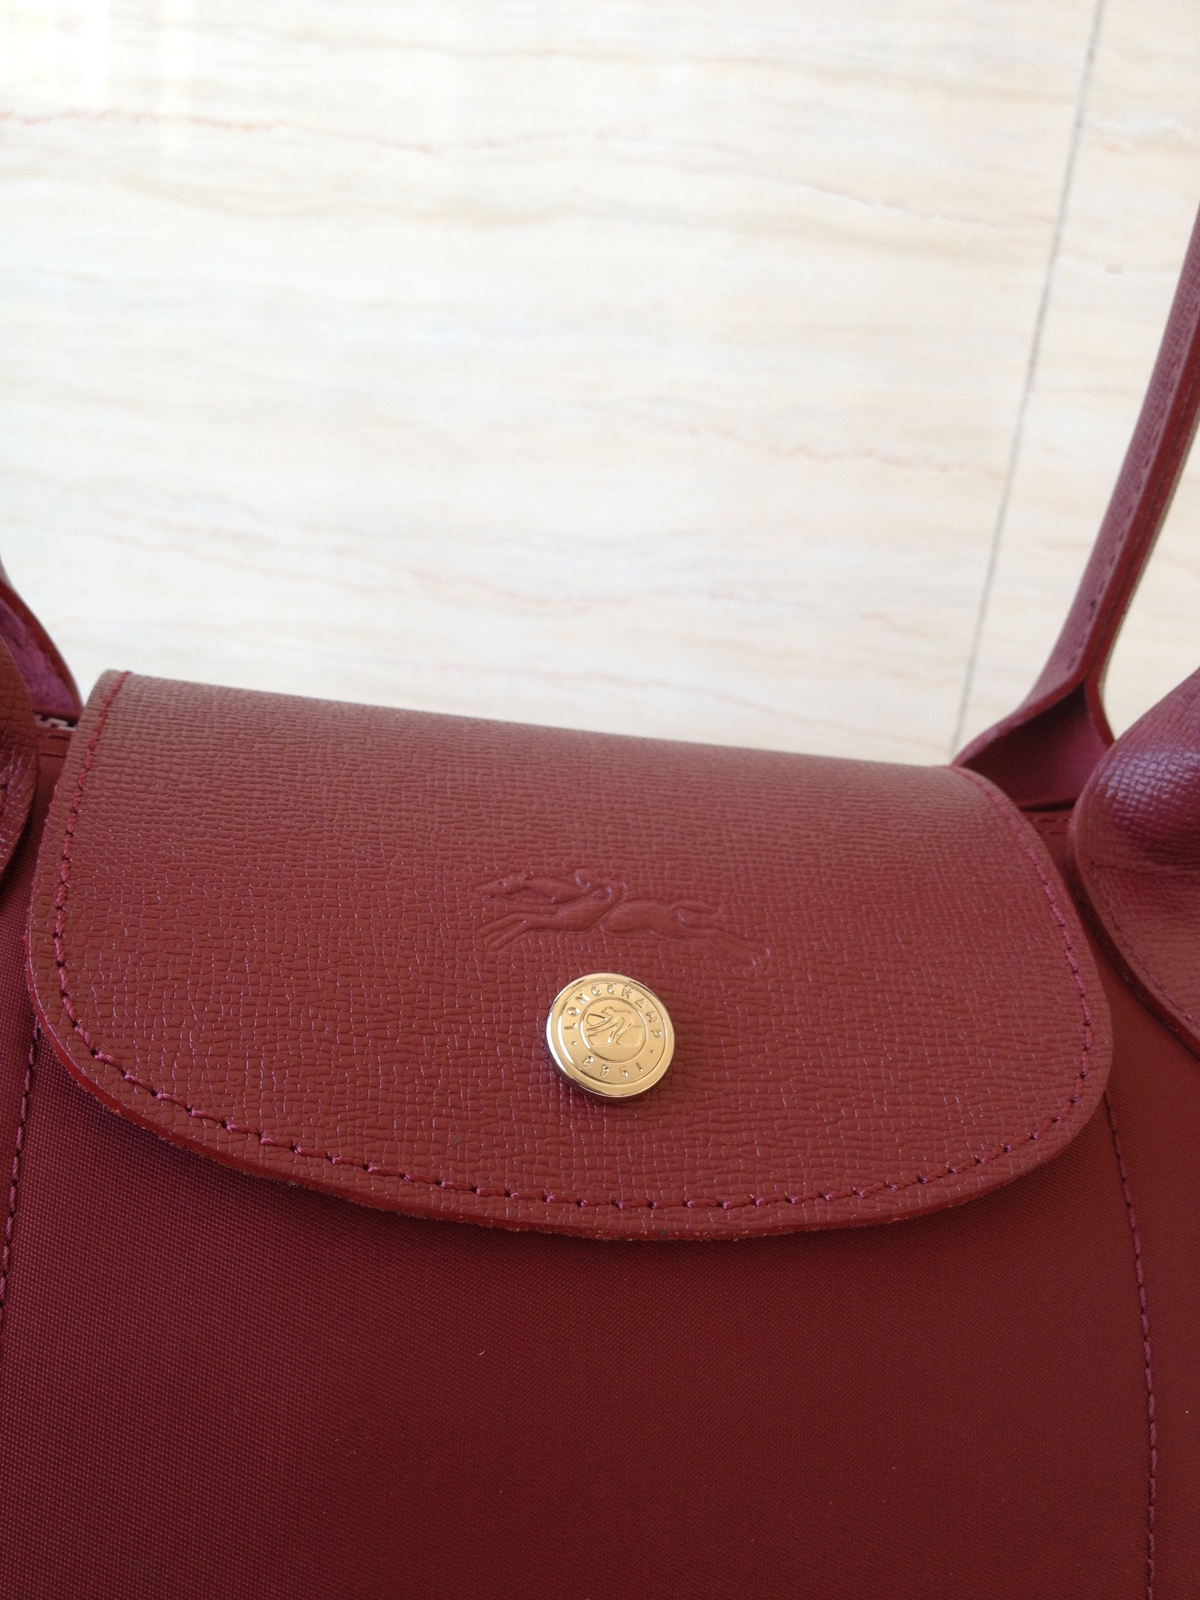 Longchamp Le Pliage Neo Small Tote Bag Wine And 28 Similar Items Black Authentic 2605578009